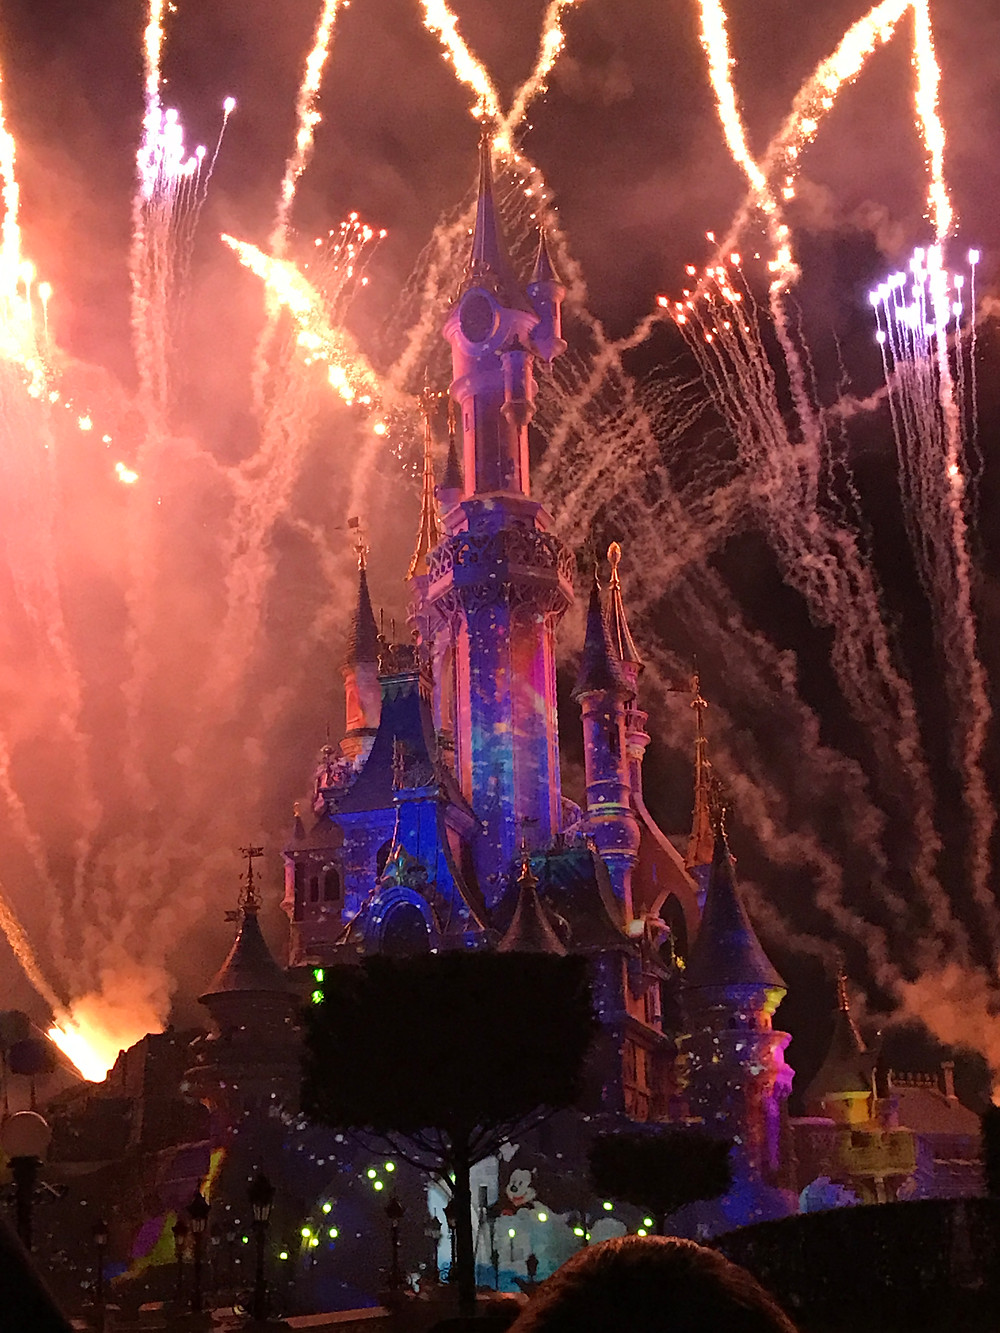 The nighttime show was spectacular